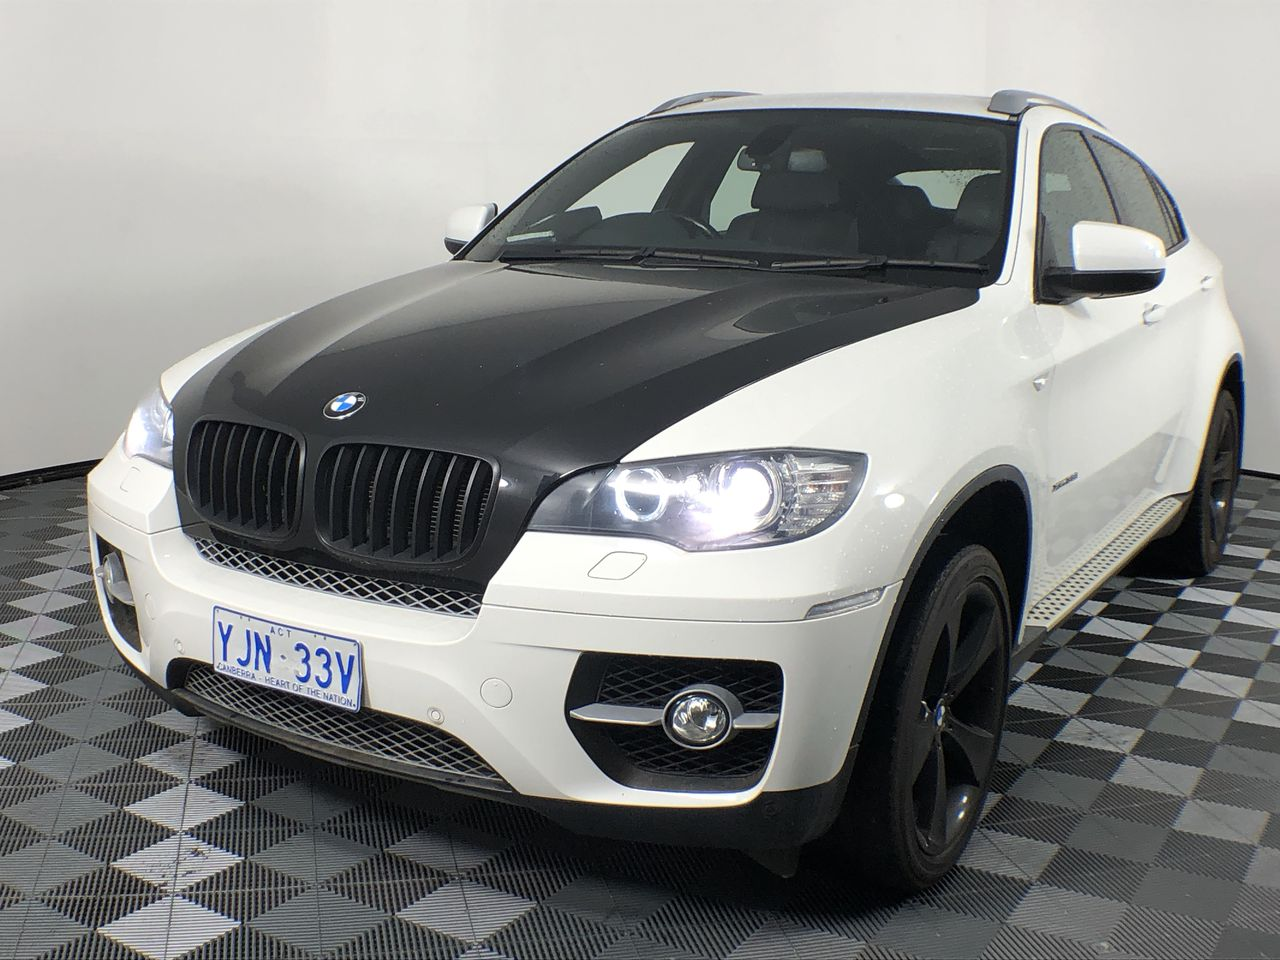 2008 BMW X6 xDRIVE 35i E71 Automatic Coupe